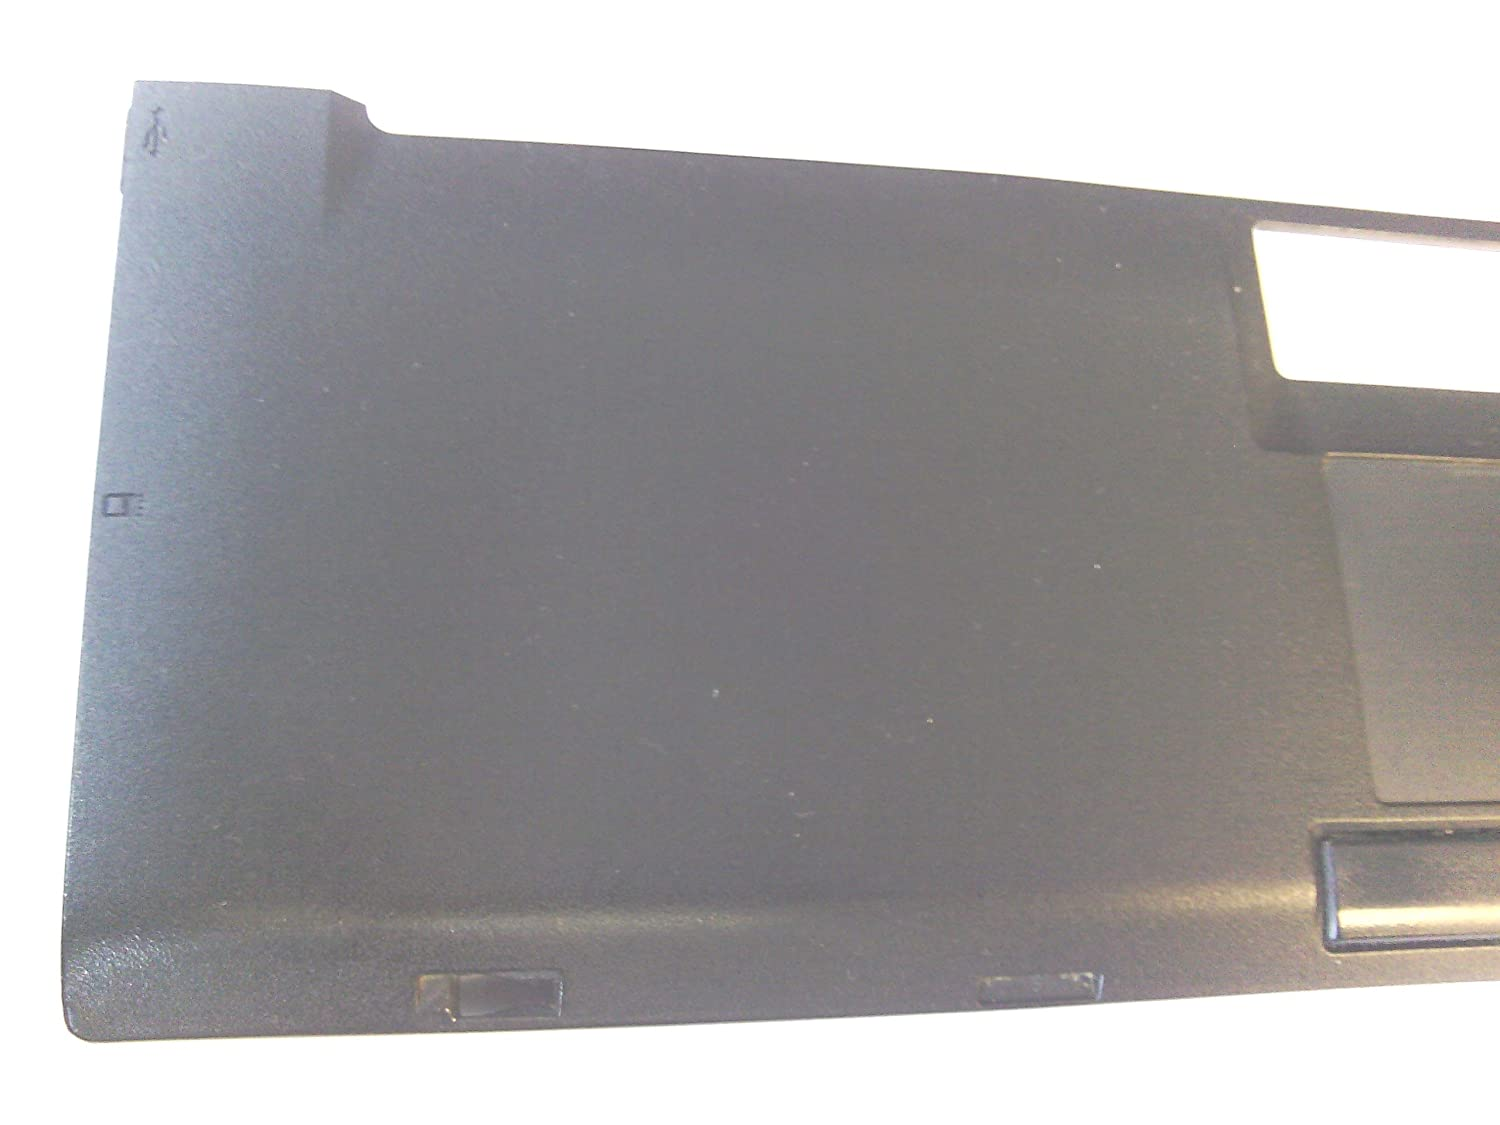 Amazon.com: IBM Lenovo ThinkPad para T61 Series P/N 42 W2472 ...